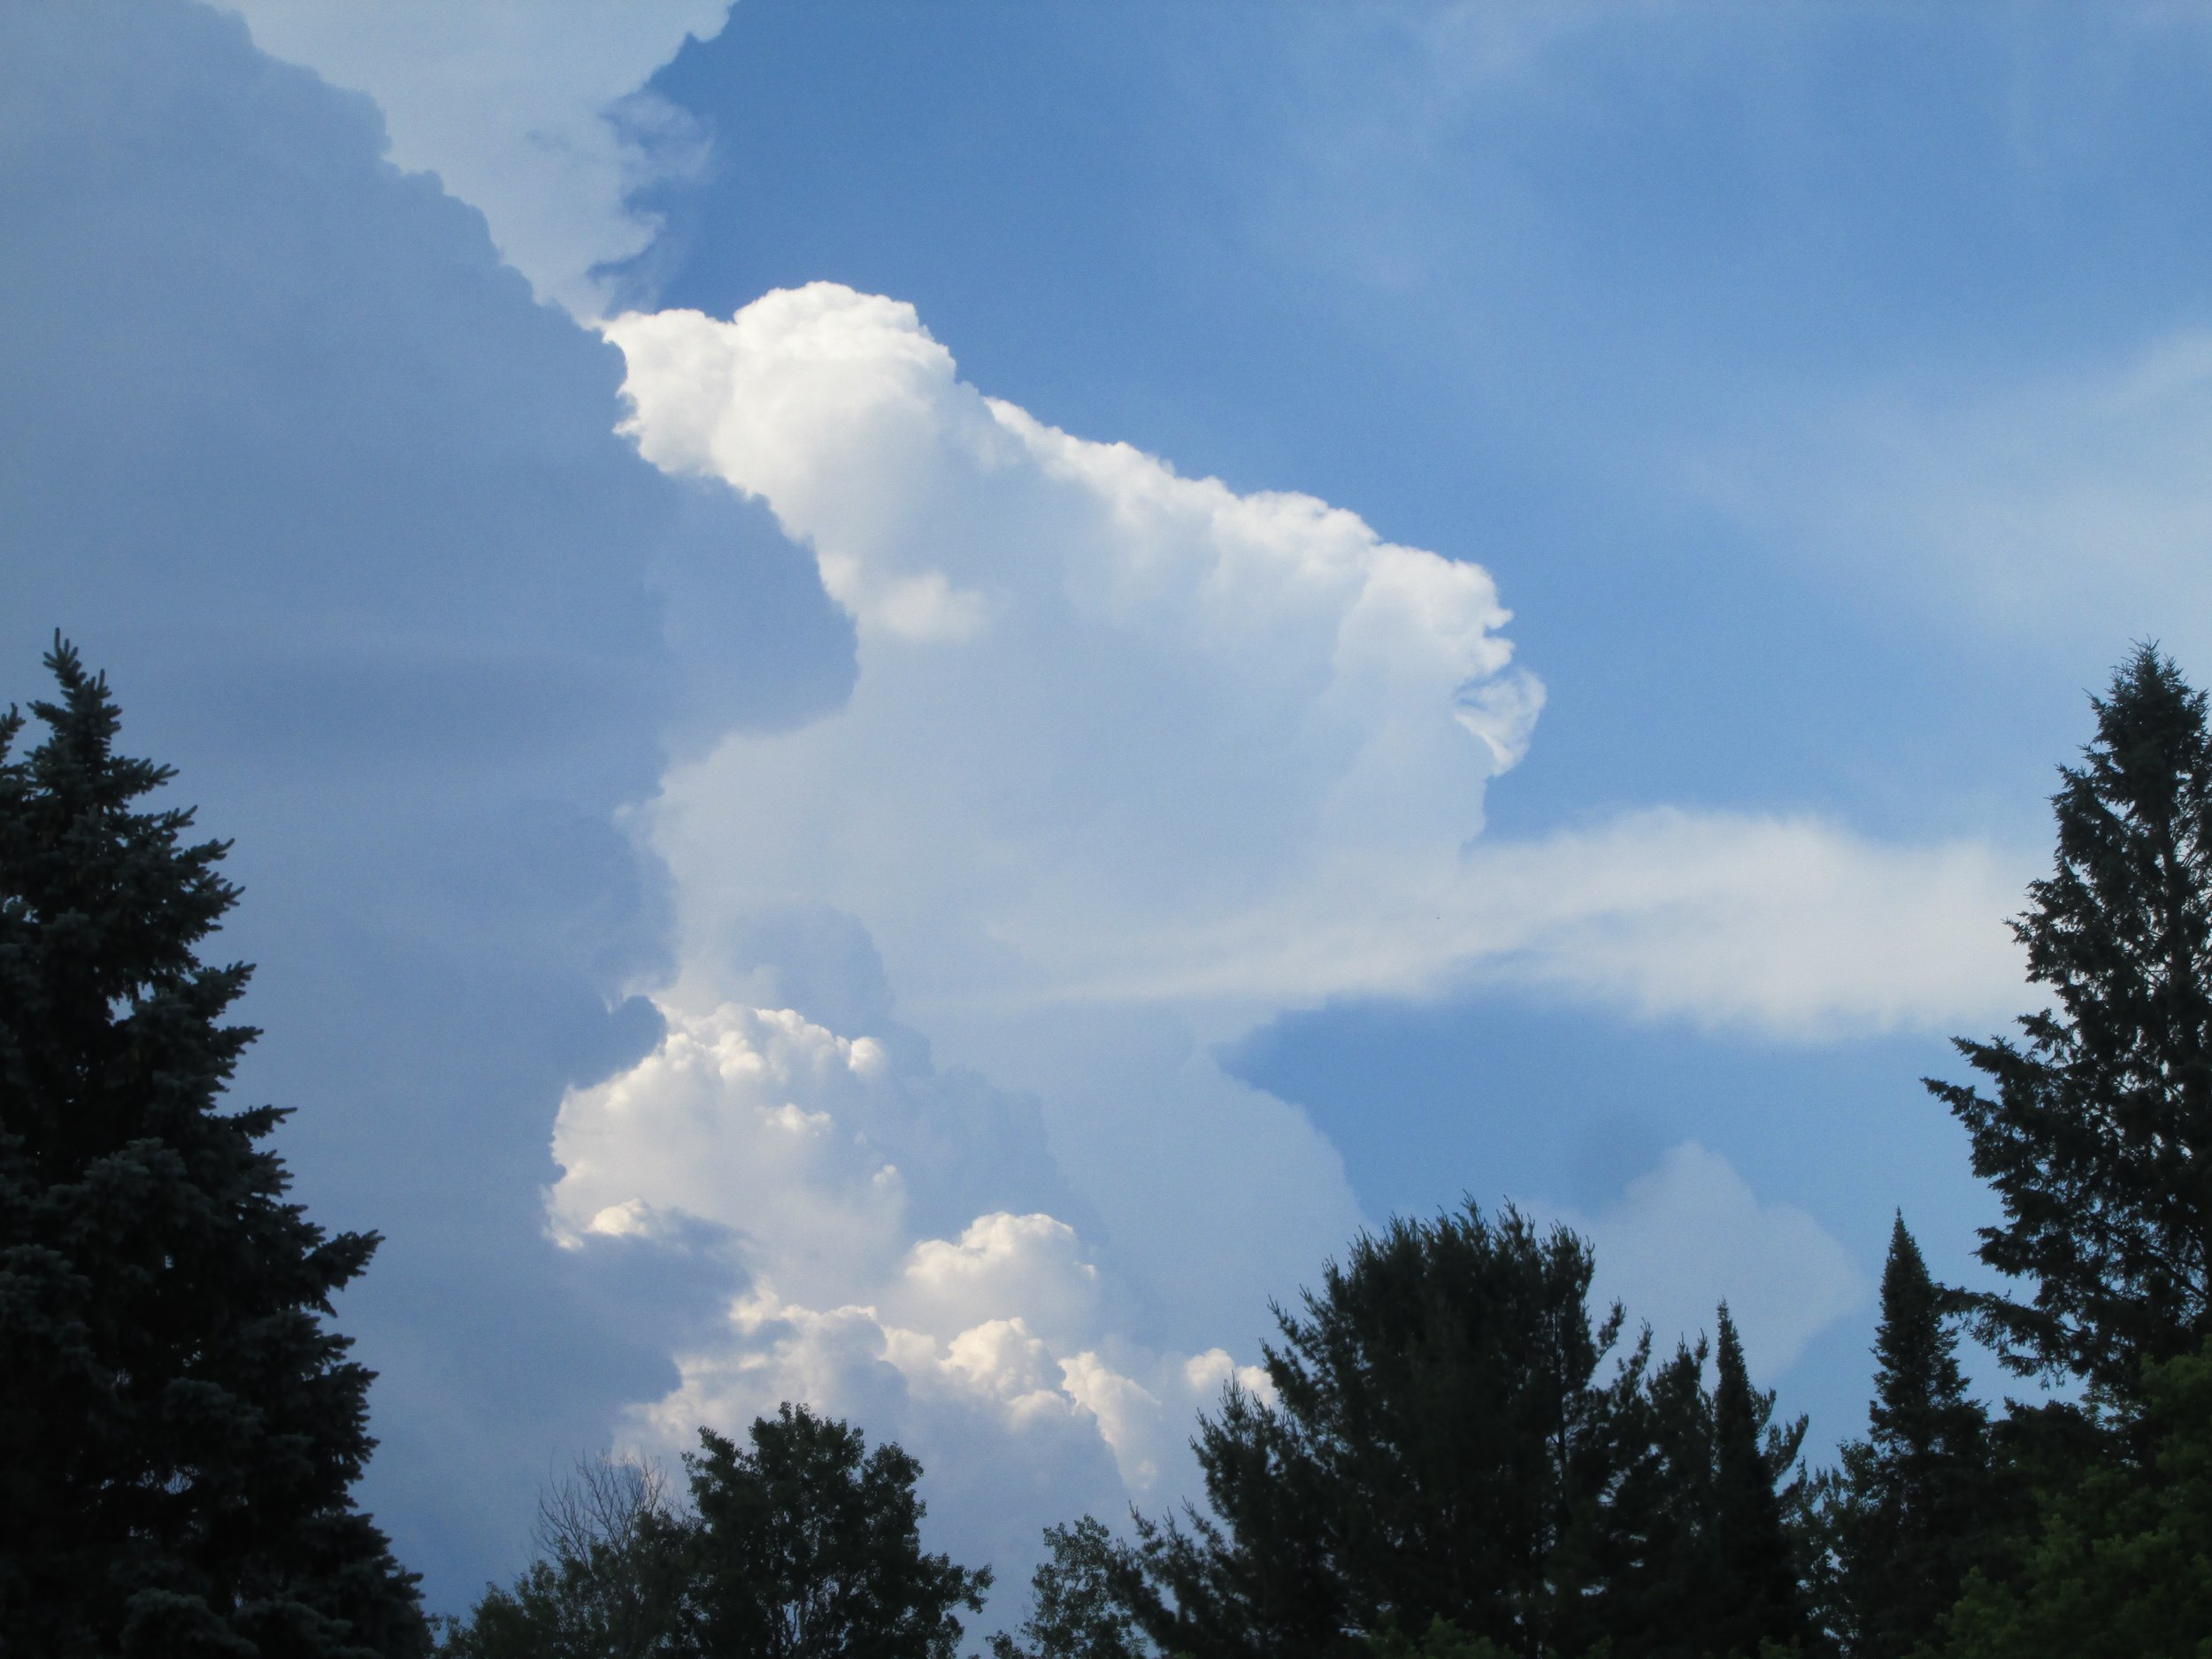 The sky above Michigan, our earthly home!